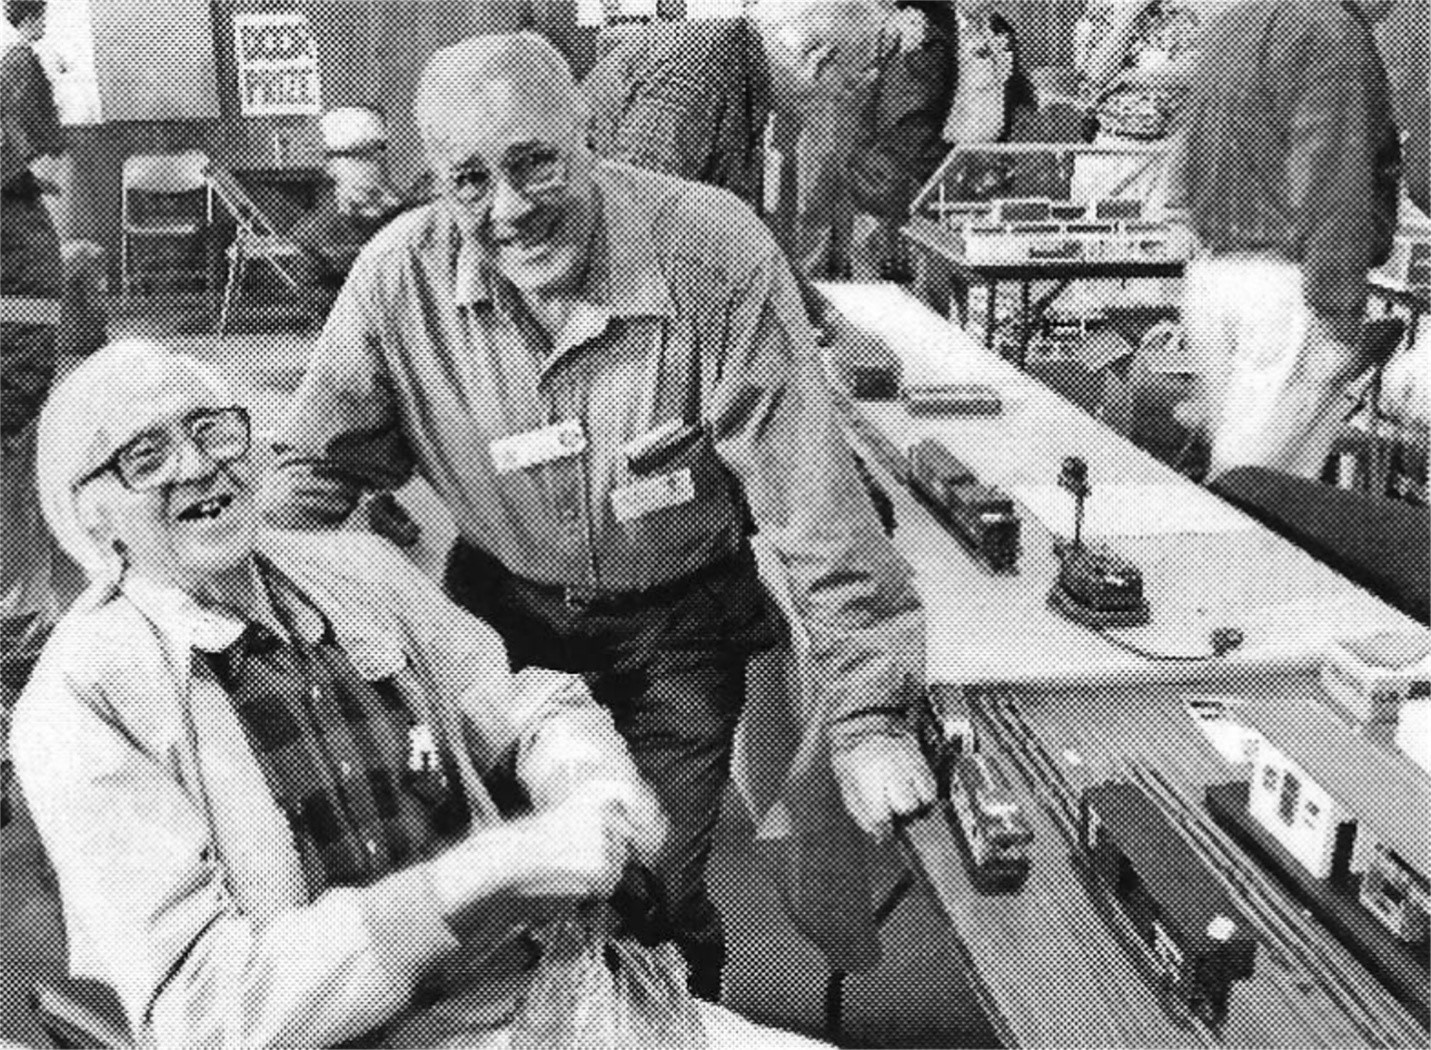 JIM DELANEY AND GUS BYROM AT A 1990s SWAP MEET